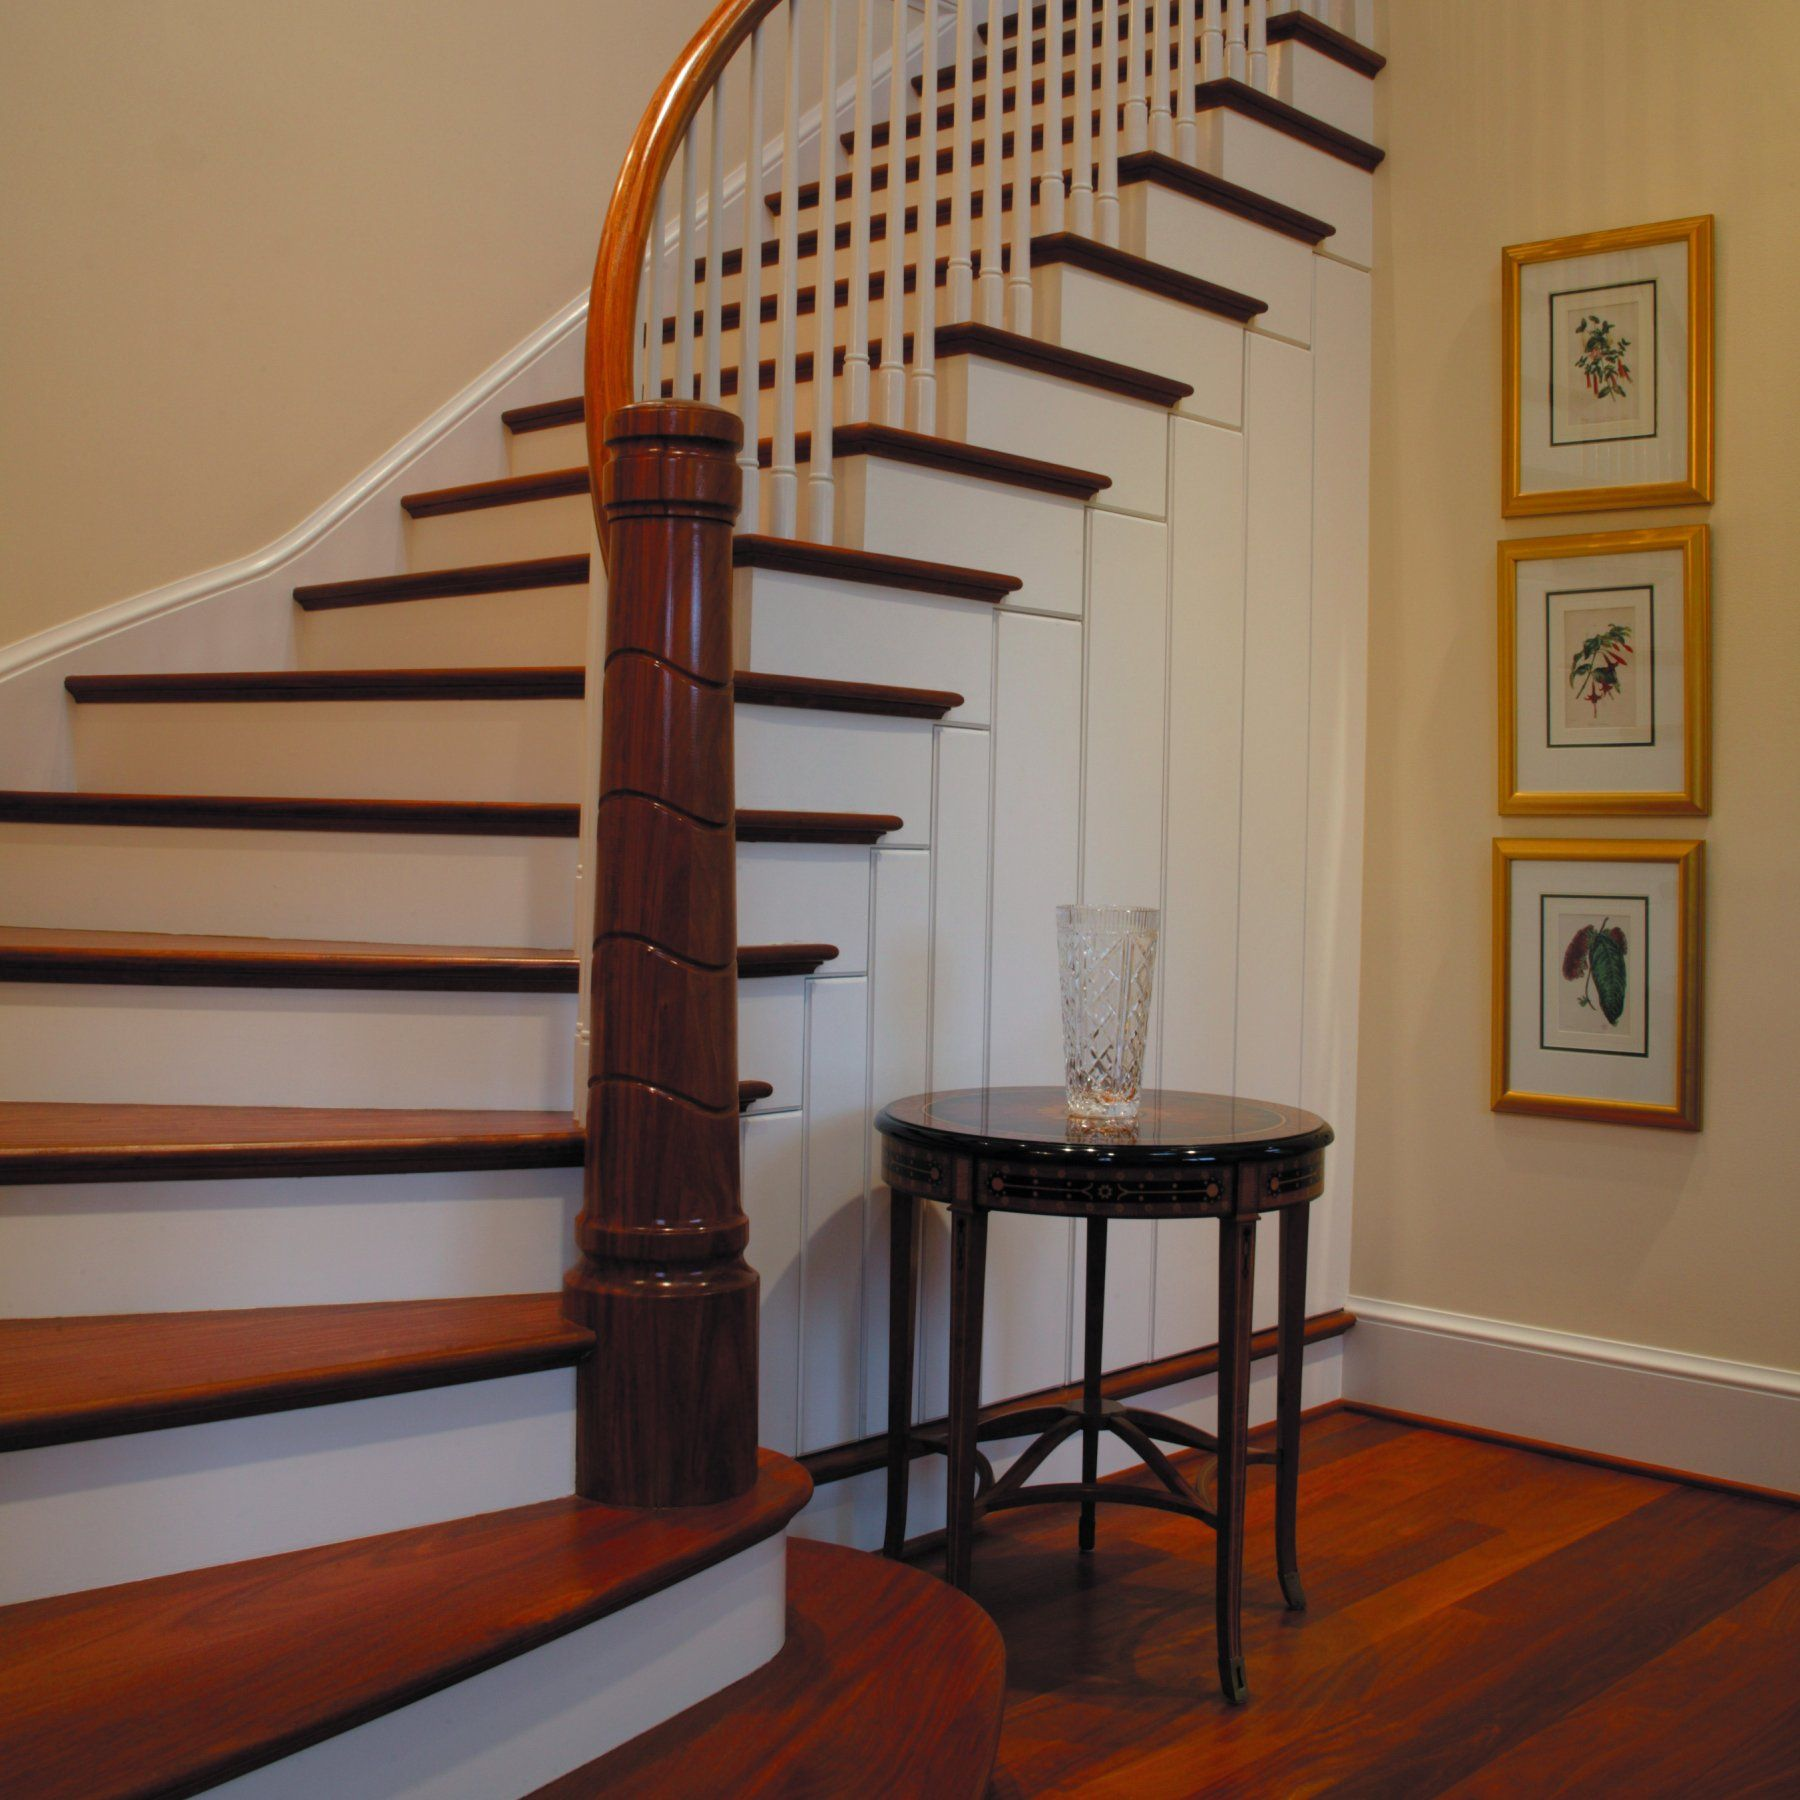 27 Really Cool Space Saving Staircase Designs: Alluring Design Idea Of Cool Staircase With Brown Wooden